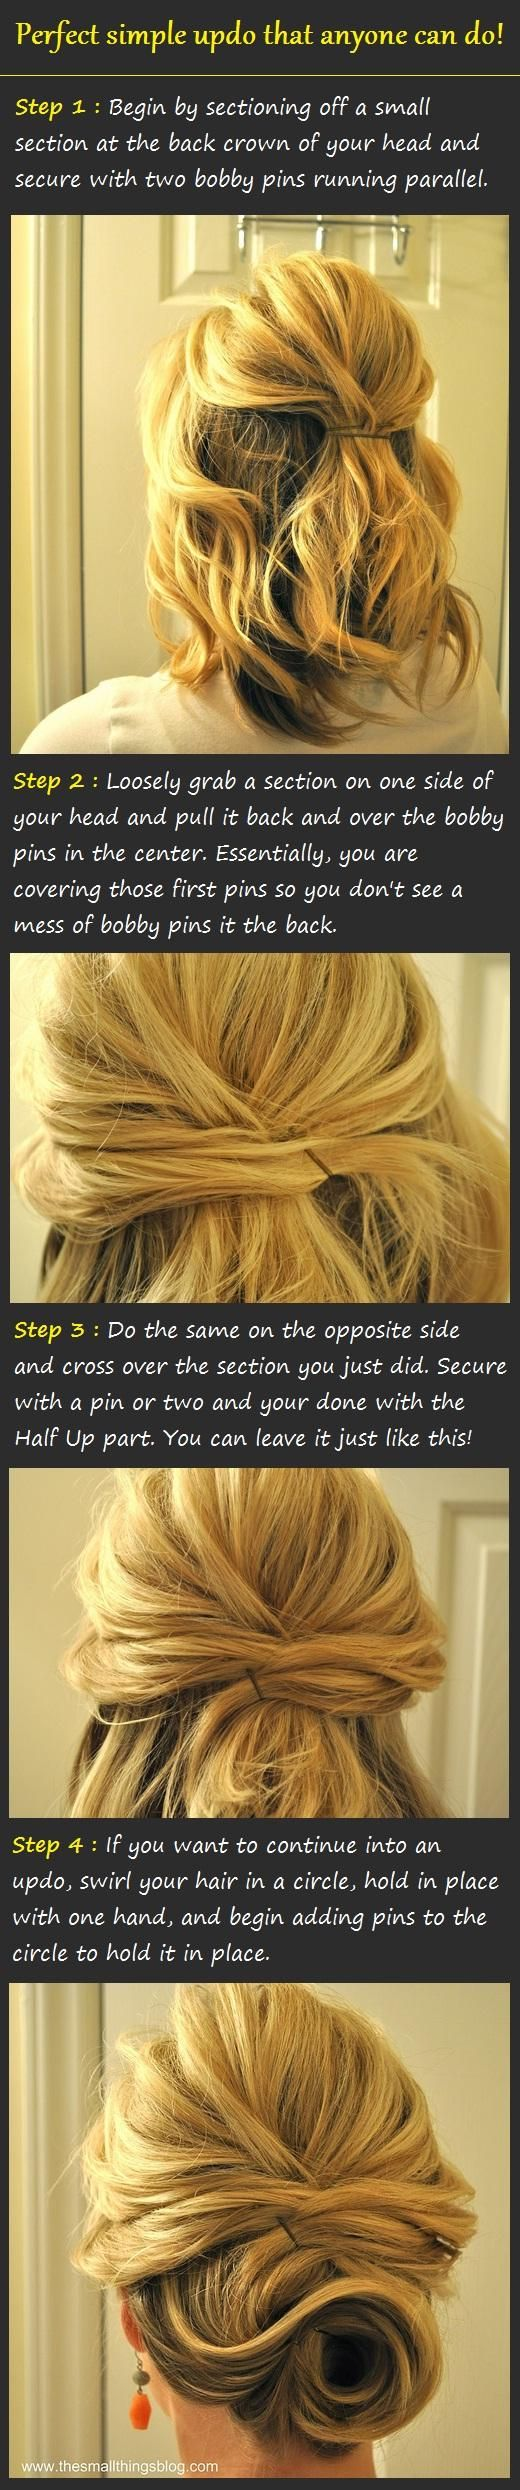 Chic updo so simple hairstyles pinterest updo easy and